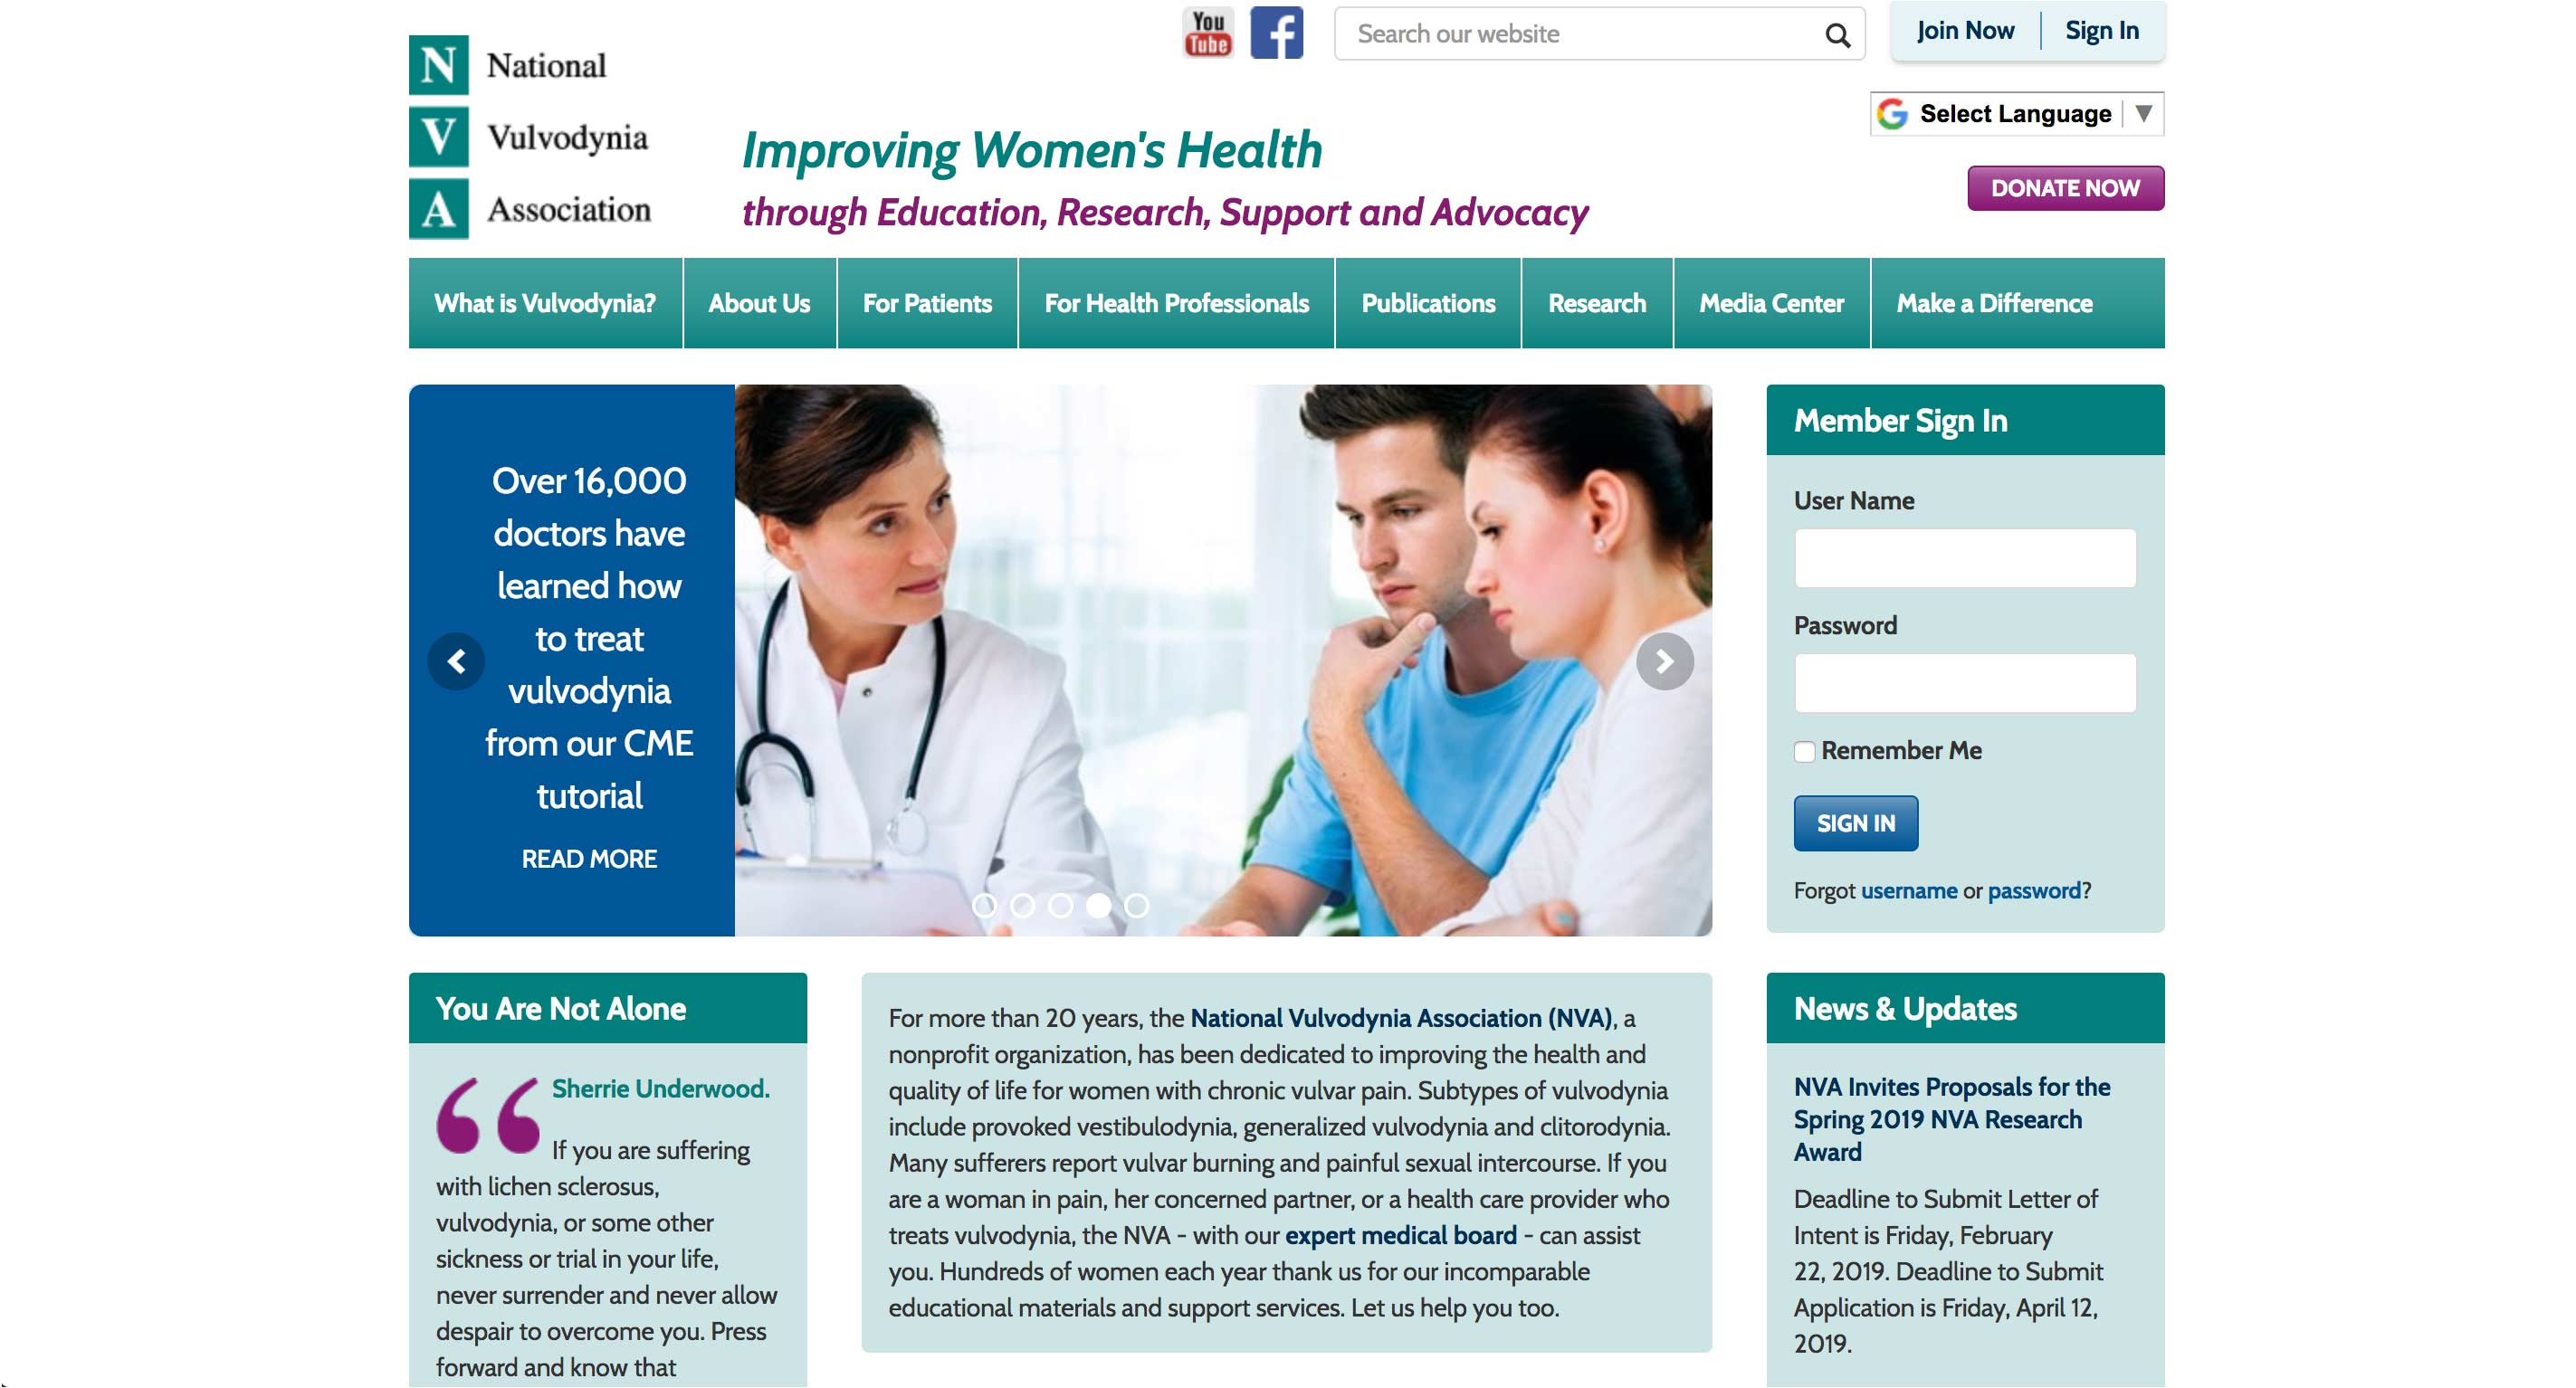 NVA - National Vulvodynia Association - Home Page